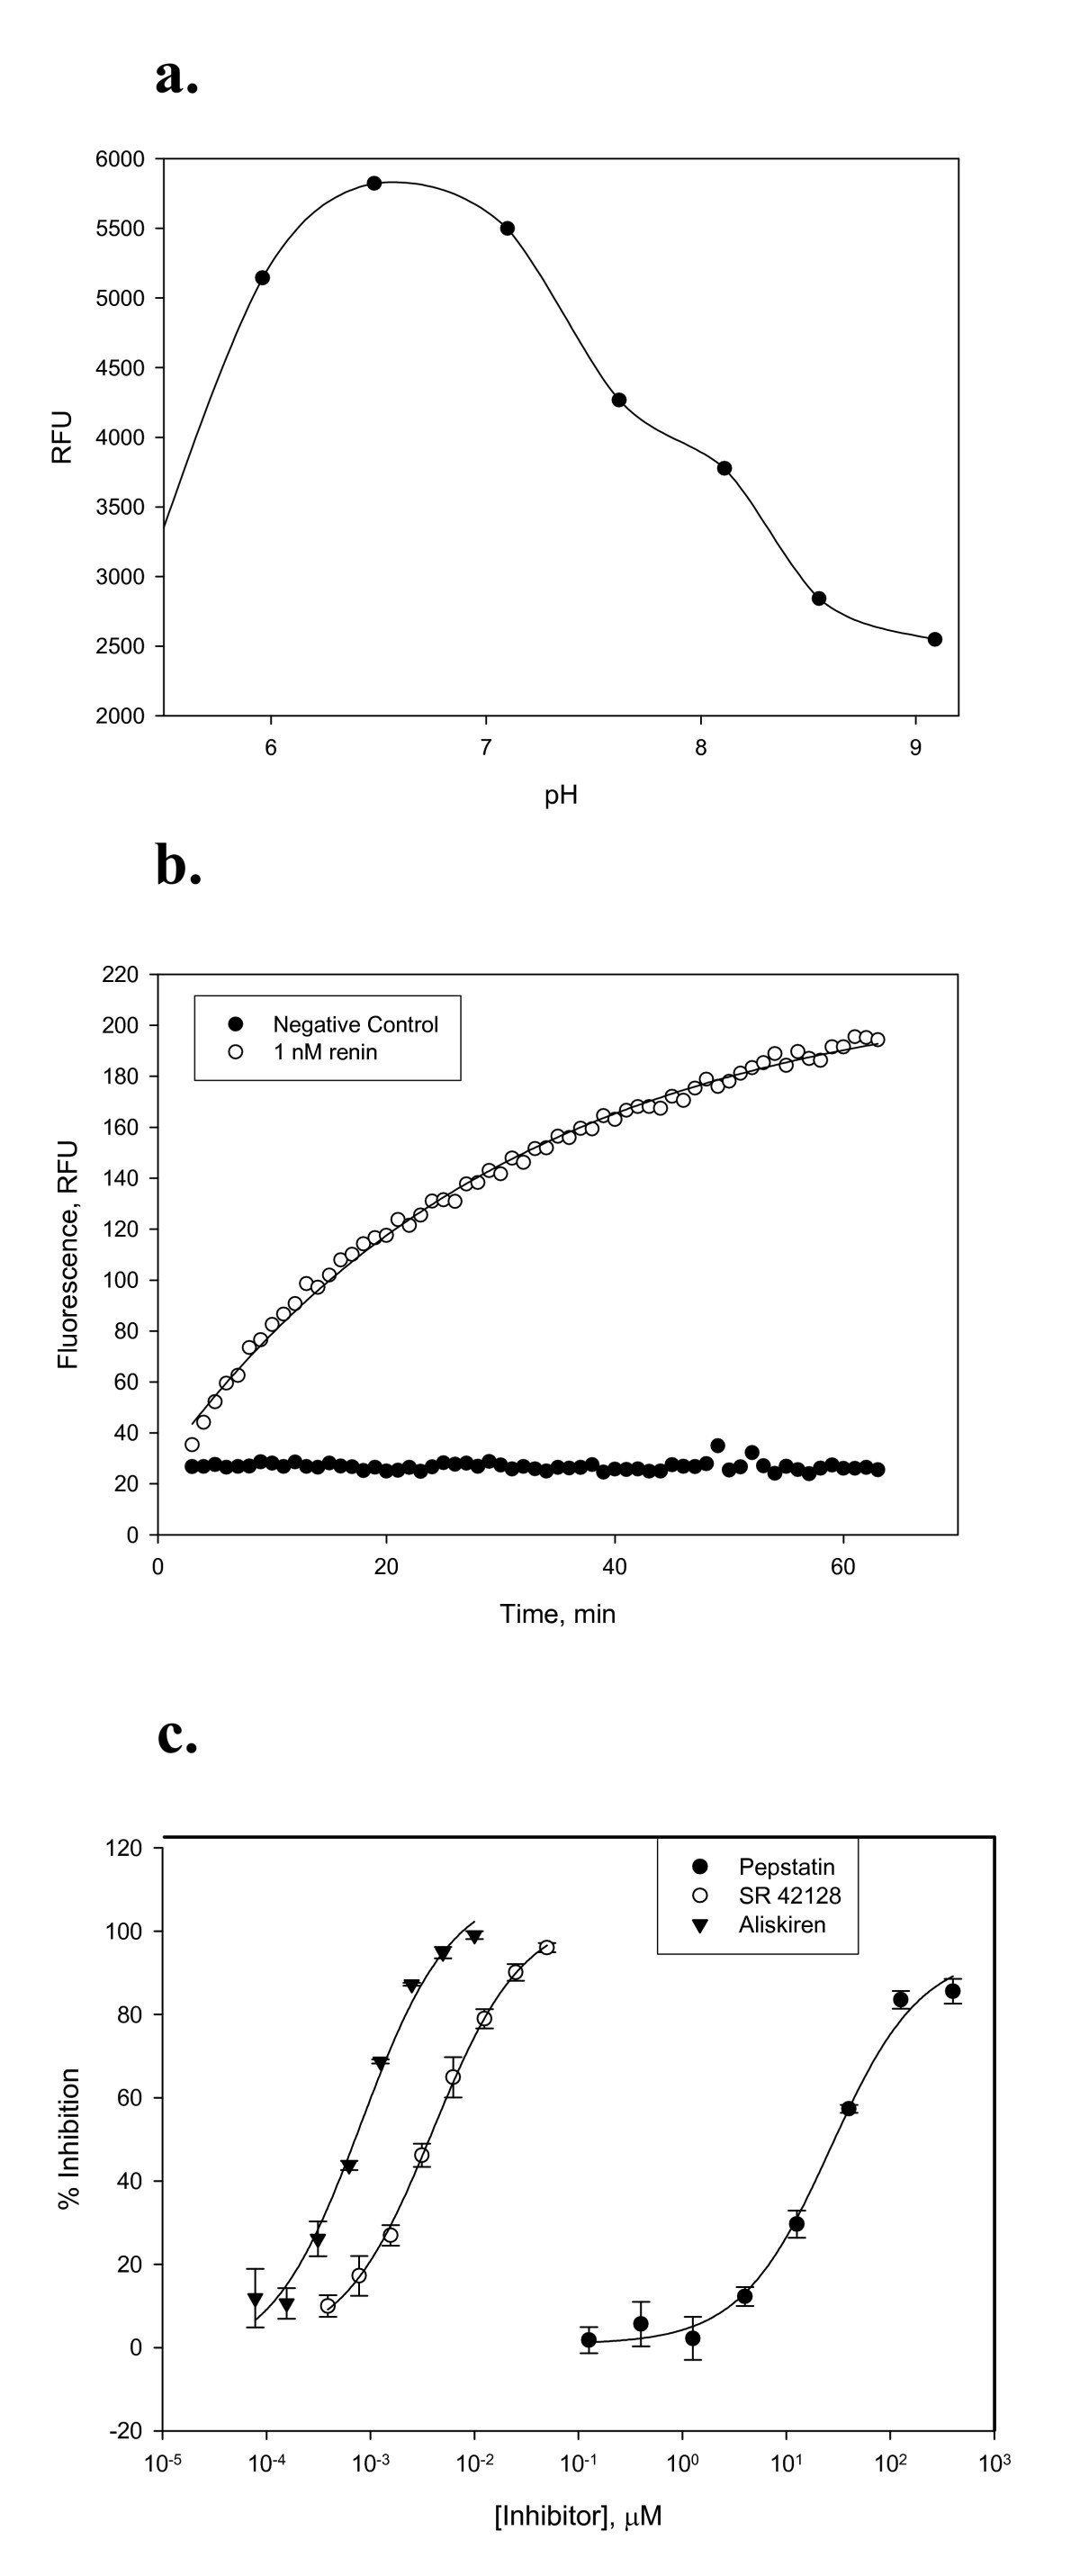 http://static-content.springer.com/image/art%3A10.1186%2F1471-2091-9-19/MediaObjects/12858_2008_Article_205_Fig2_HTML.jpg